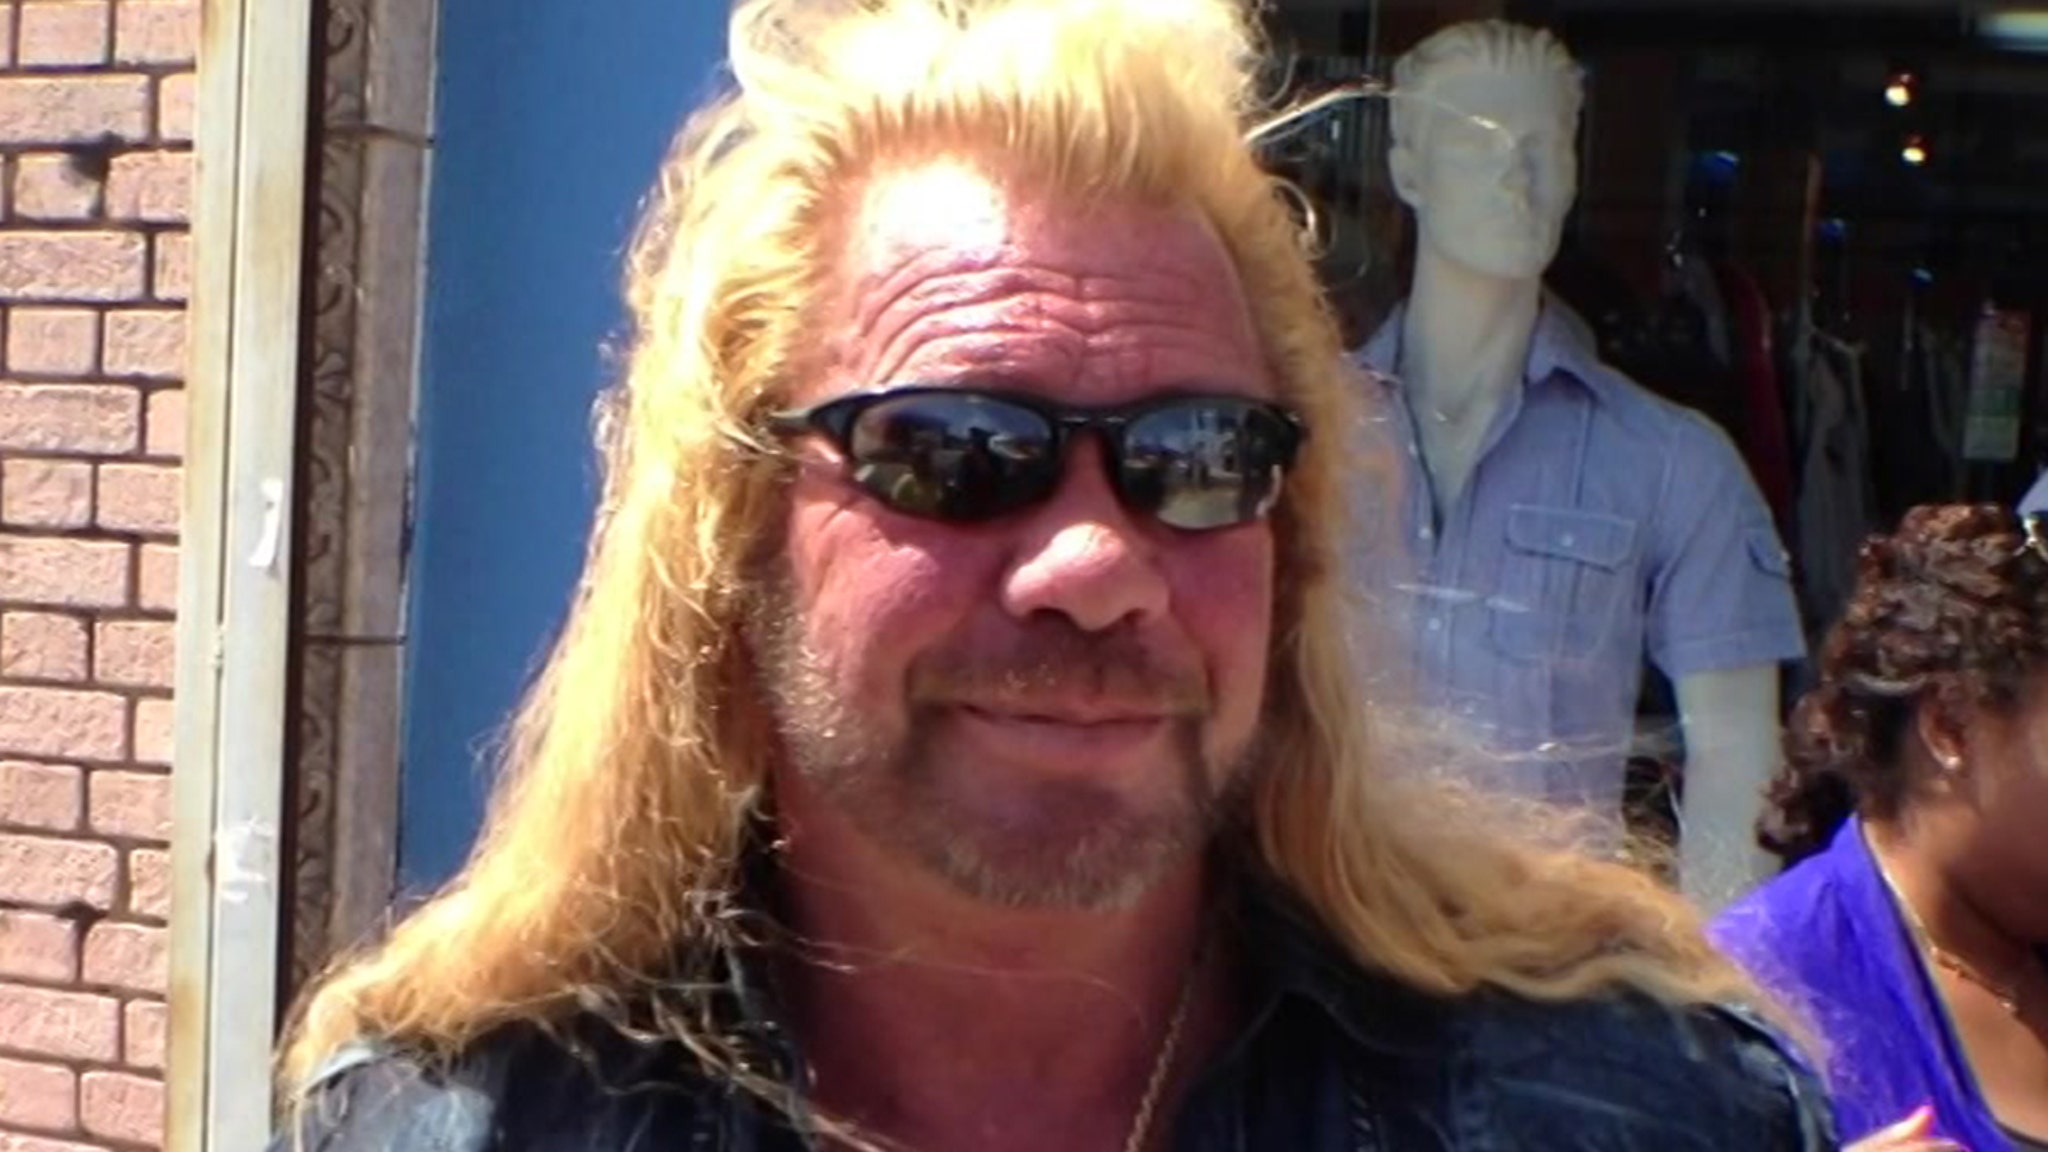 Dog The Bounty Hunter Did Not Suffer Heart Attack